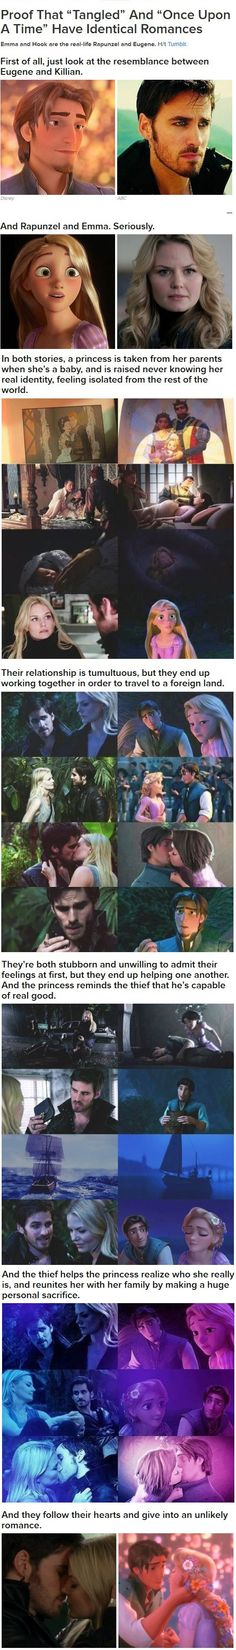 Once Upon A Time (OUAT) and TangledThe Emma & Hook and Rapunzel & Flynn parallels Aw this is cute I just ruined once upon a time for myself however I hadn't gotten that far yet HAHAHAH Ouat, Captain Swan, Captain Hook, Disney Love, Disney Magic, Disney Kiss, Once Upon A Time, Hunger Games, Live Action